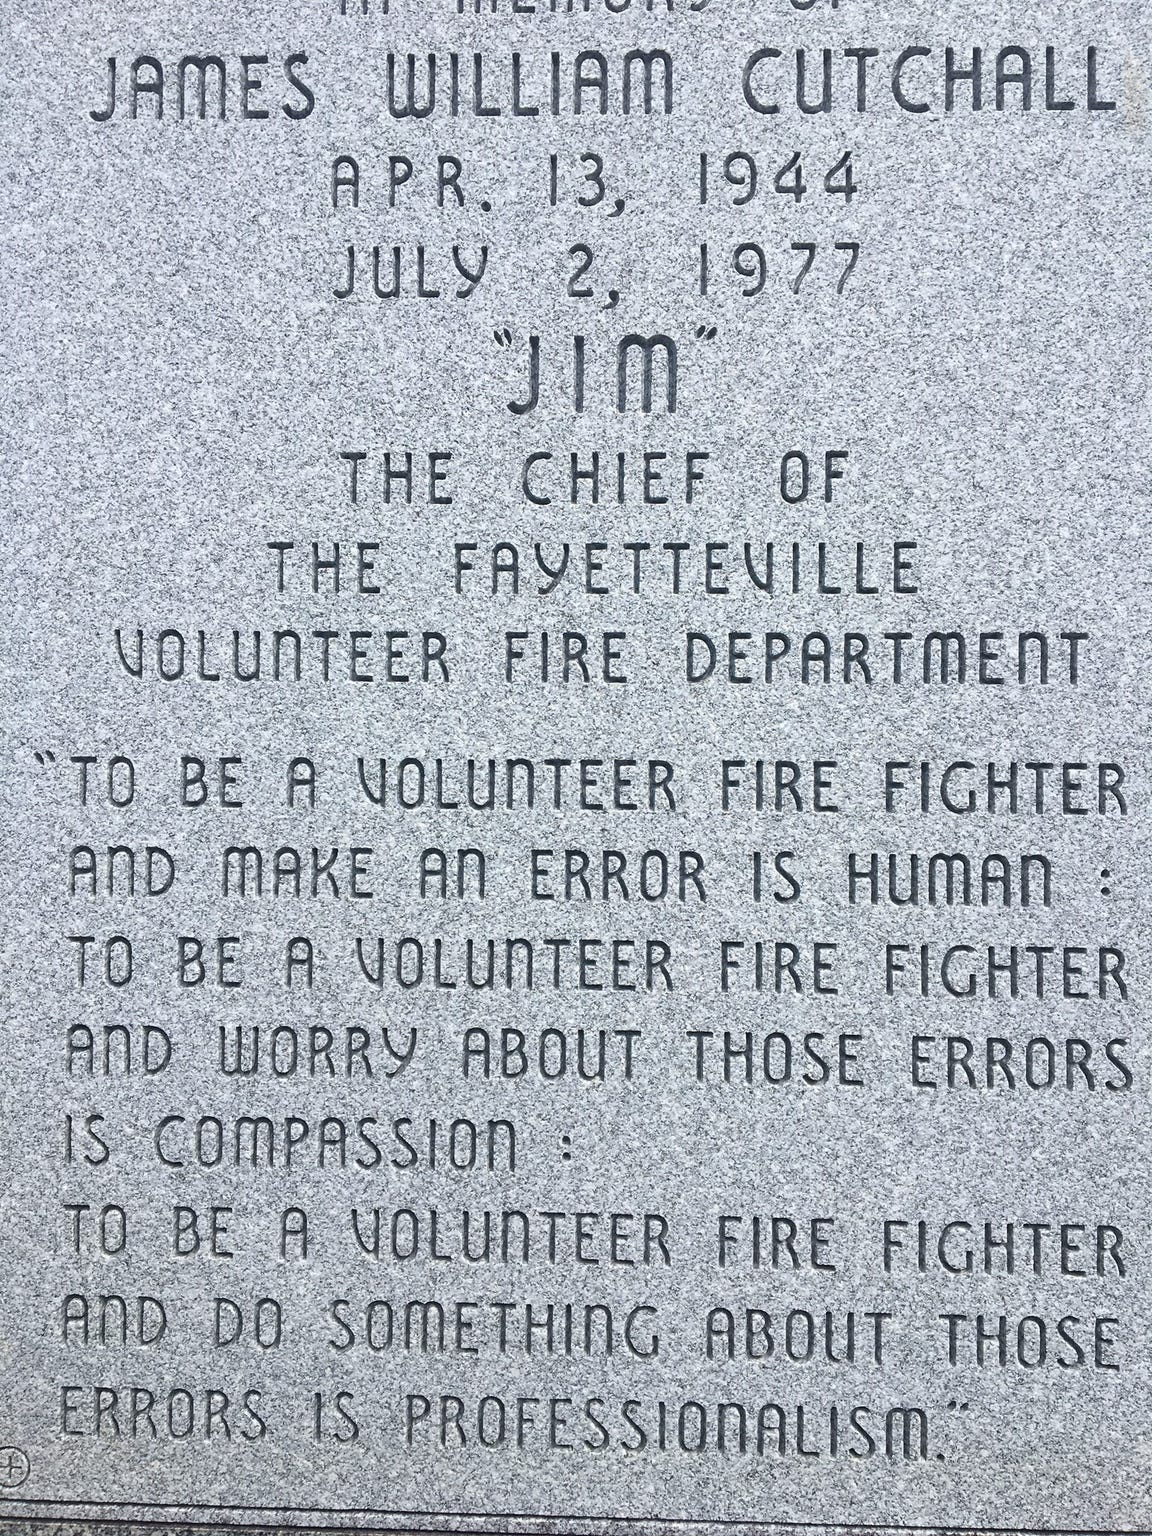 Jim Cutchall's gravestone is inscribed with one of